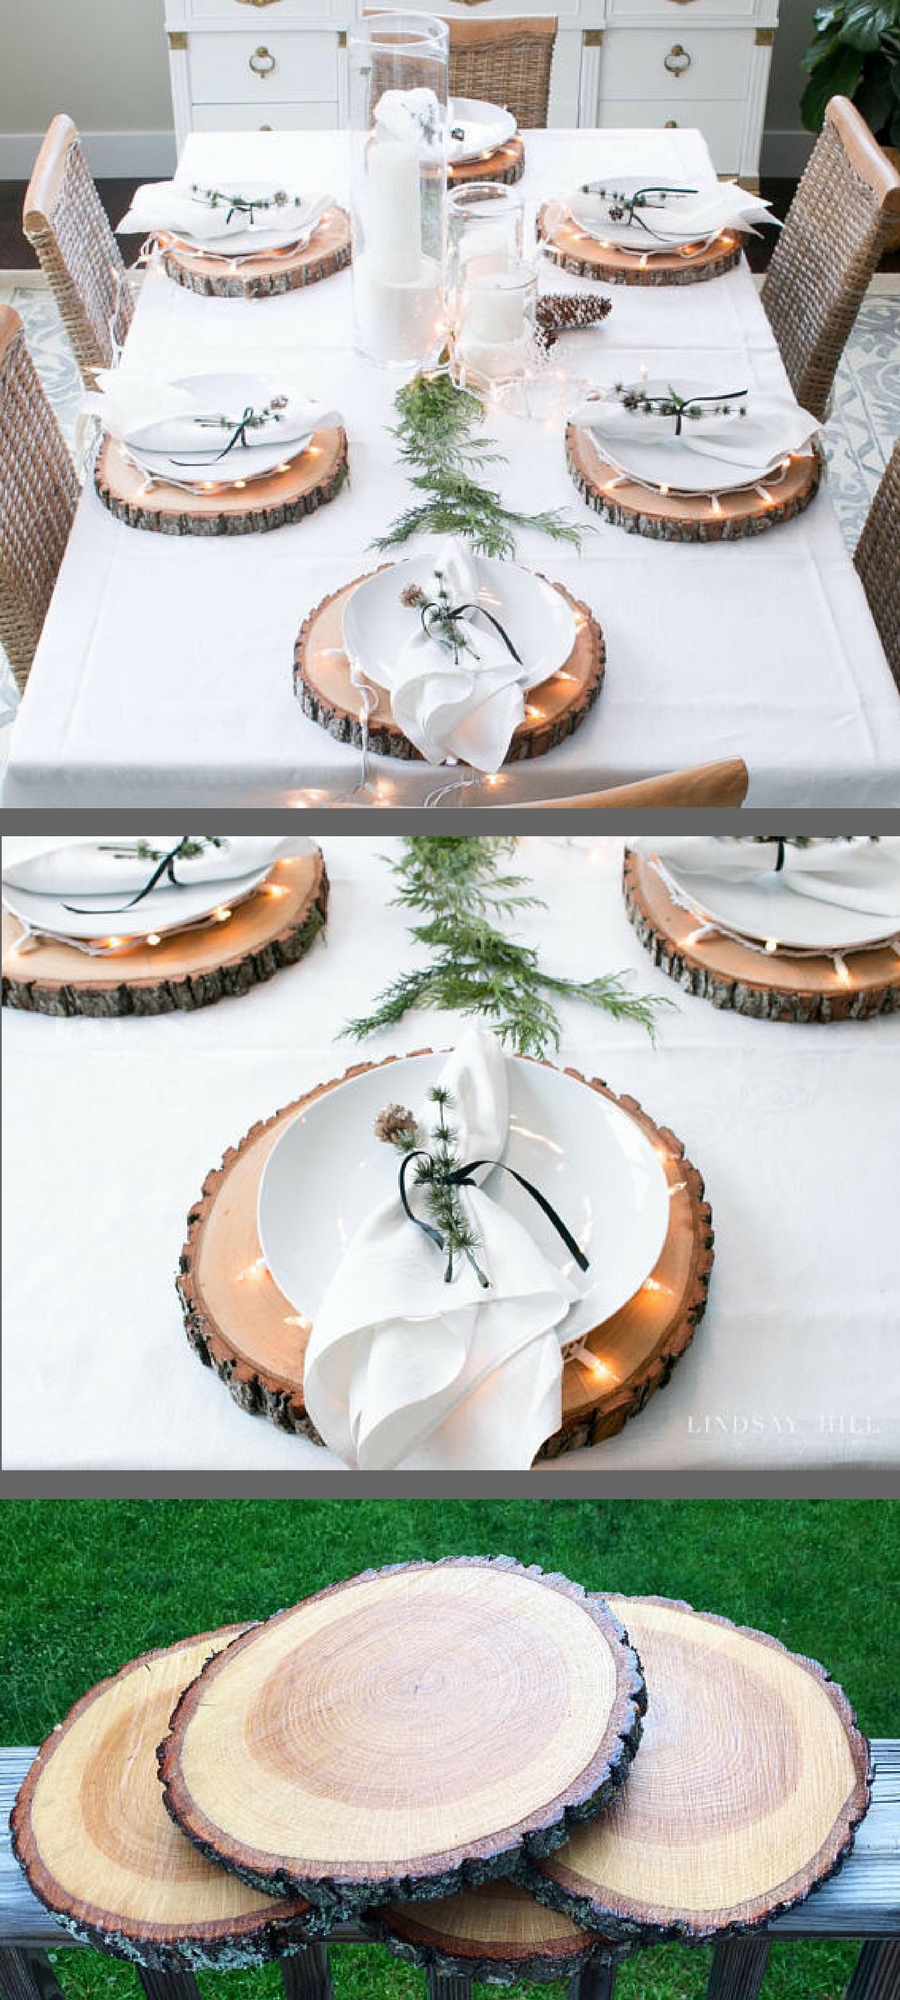 Rustic Wood Slice Plate Chargers Great Idea Tabledecor Thanksgiving Rustic Woodland H Table Decorations Rustic Cabin Decor Thanksgiving Table Settings